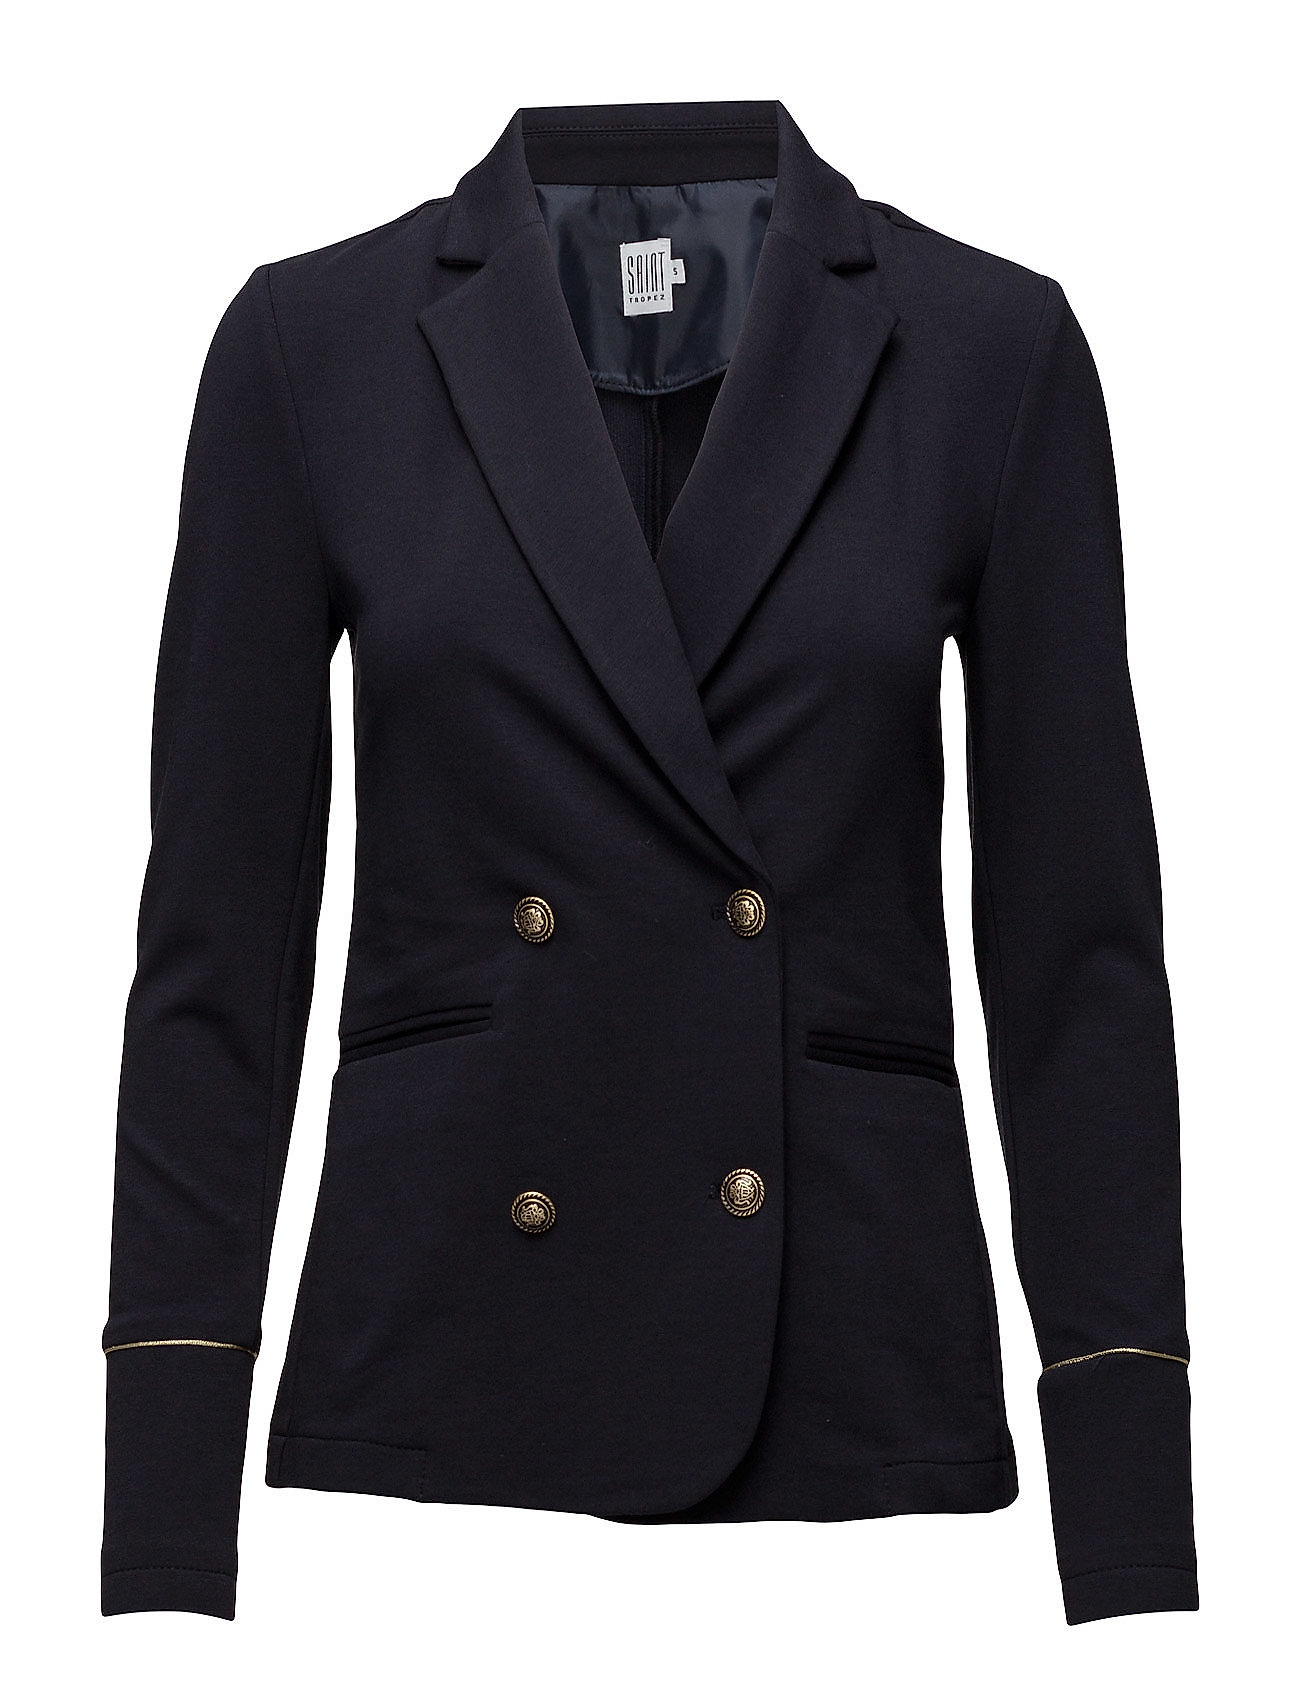 Jacket With Military Buttons Saint Tropez Blazere til Damer i